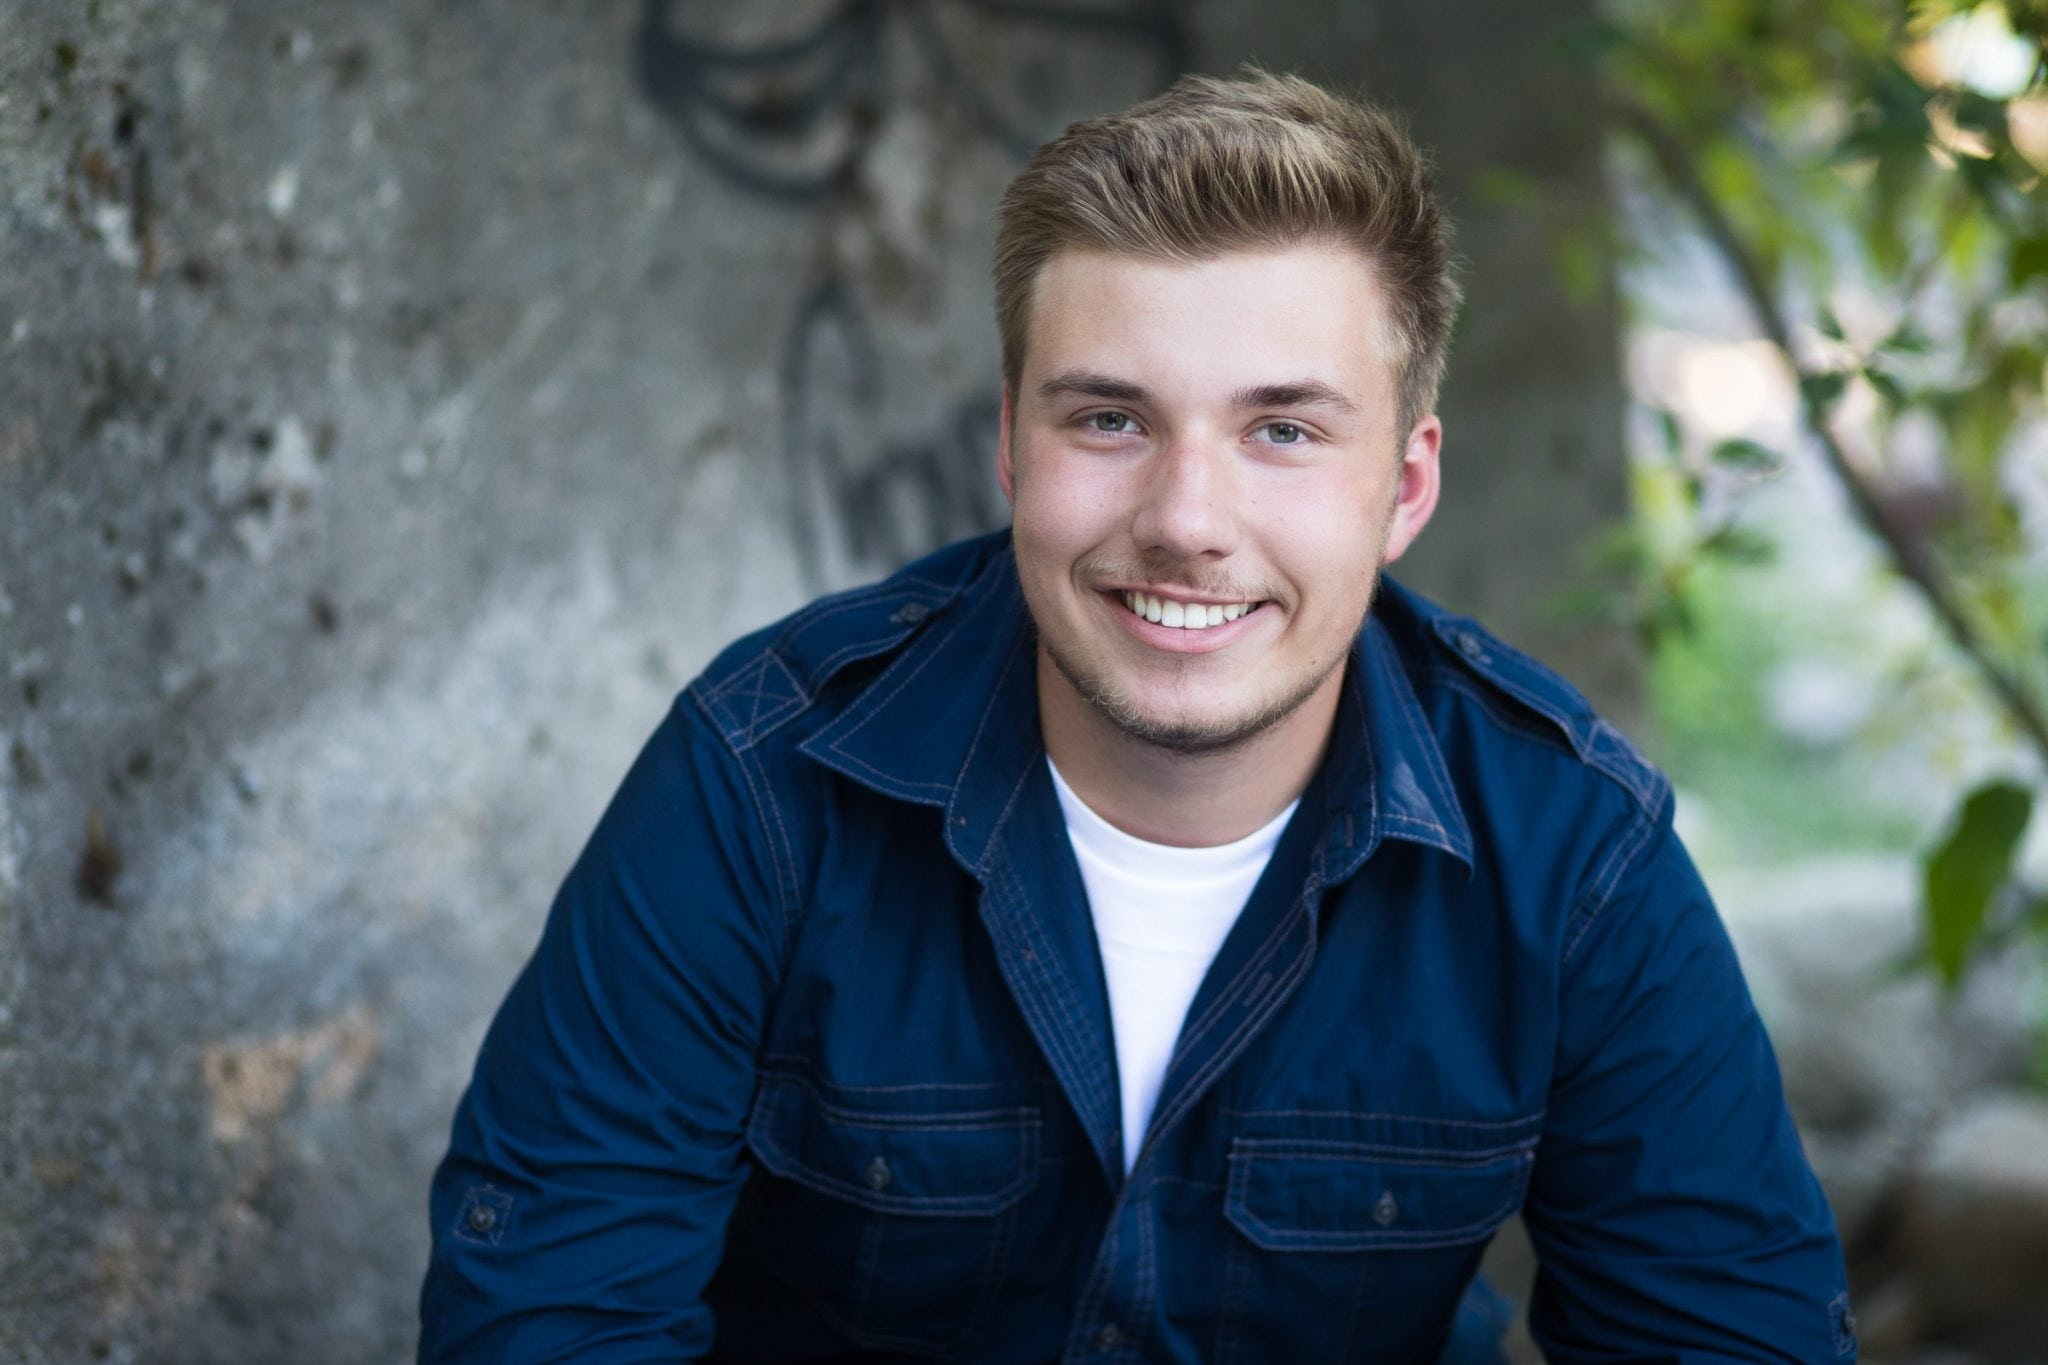 Spokane senior portrait photographer